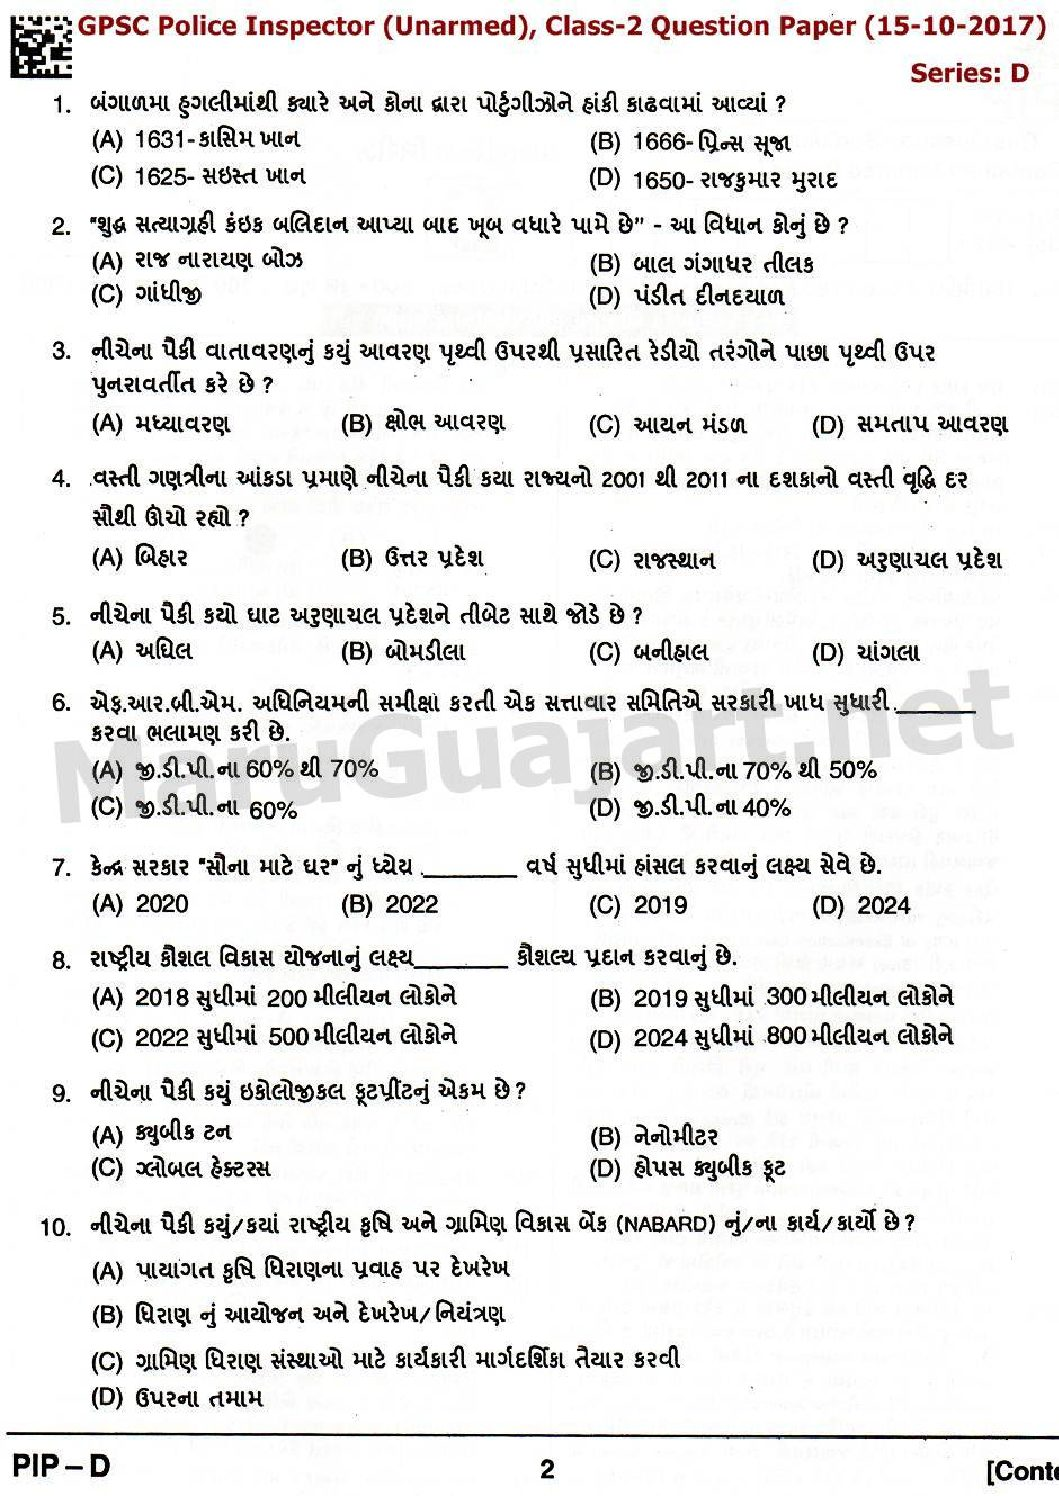 GPSC Police Inspector ( Unarmed ), Class -2 Question Paper (15-10-2017) Download